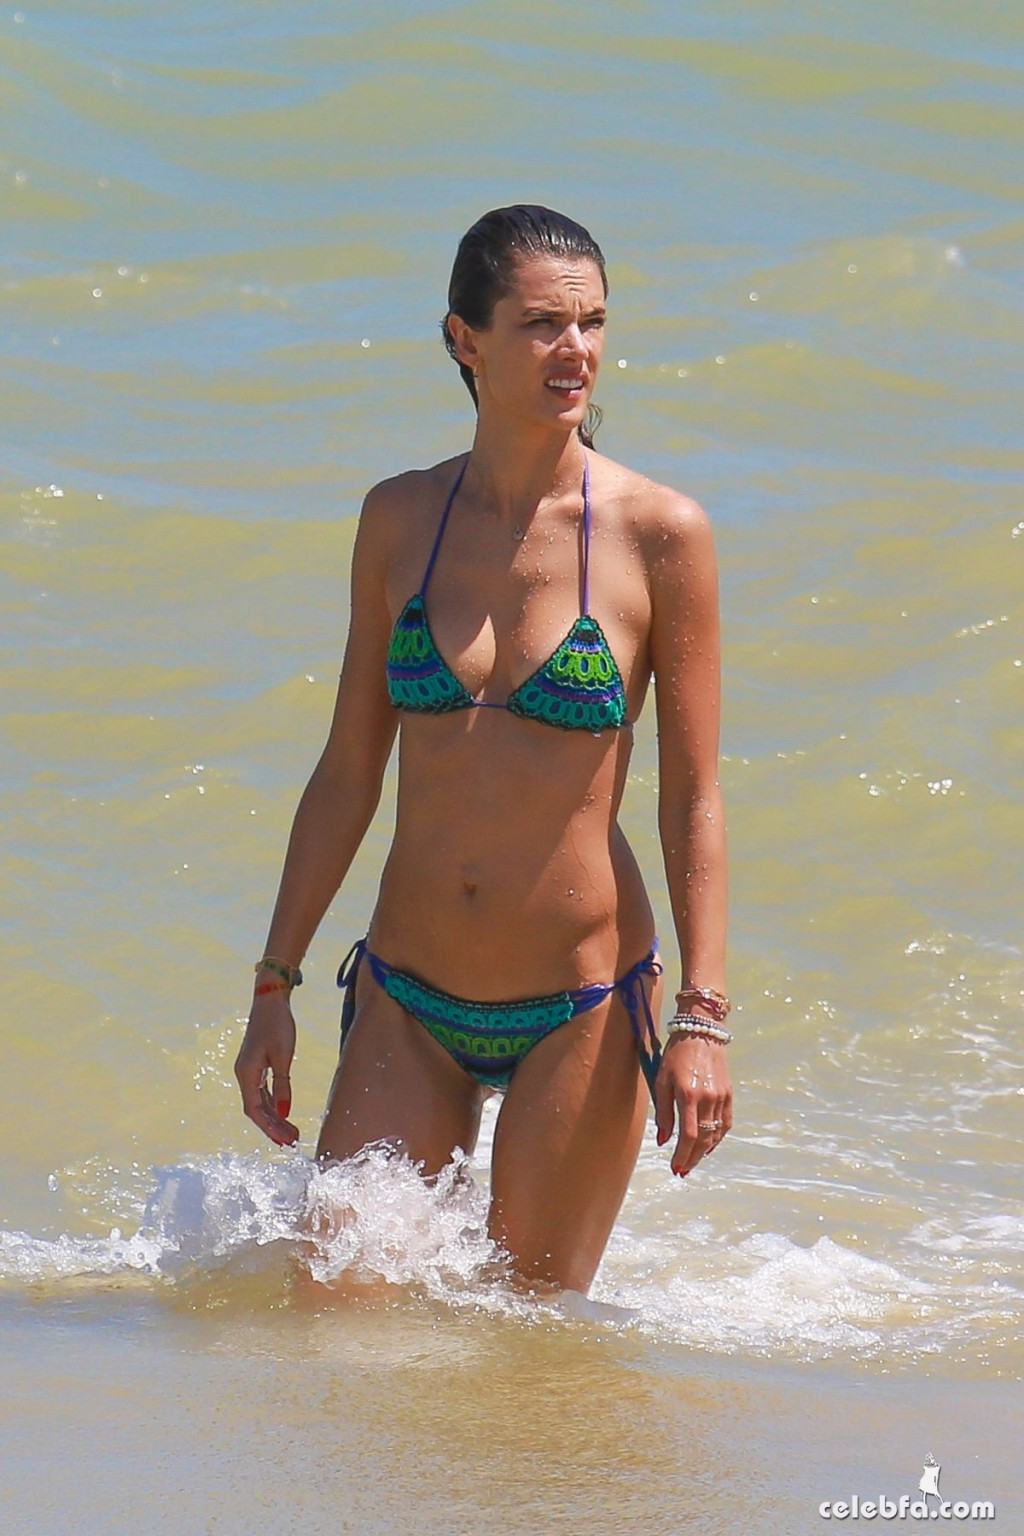 alessandra-ambrosio-in-bikini-at-a-beach-in-brazil-january-2016 (8)